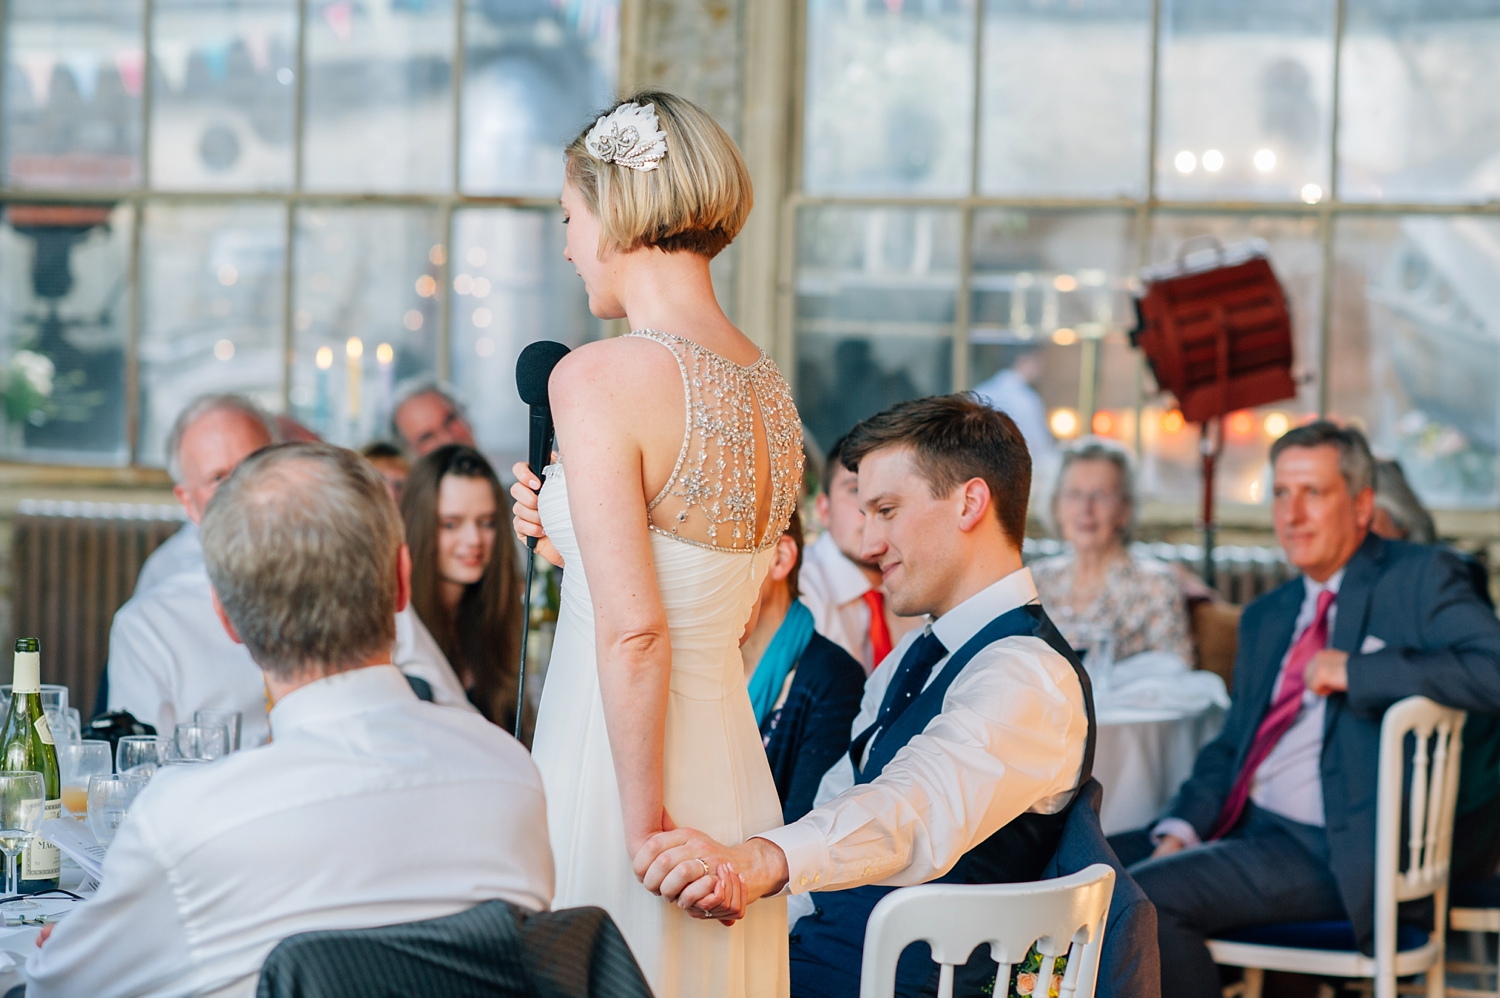 0164-lisa-devine-alternative-wedding-photography-london-hackney-dalston-london-photography-townhall-hotel.JPG